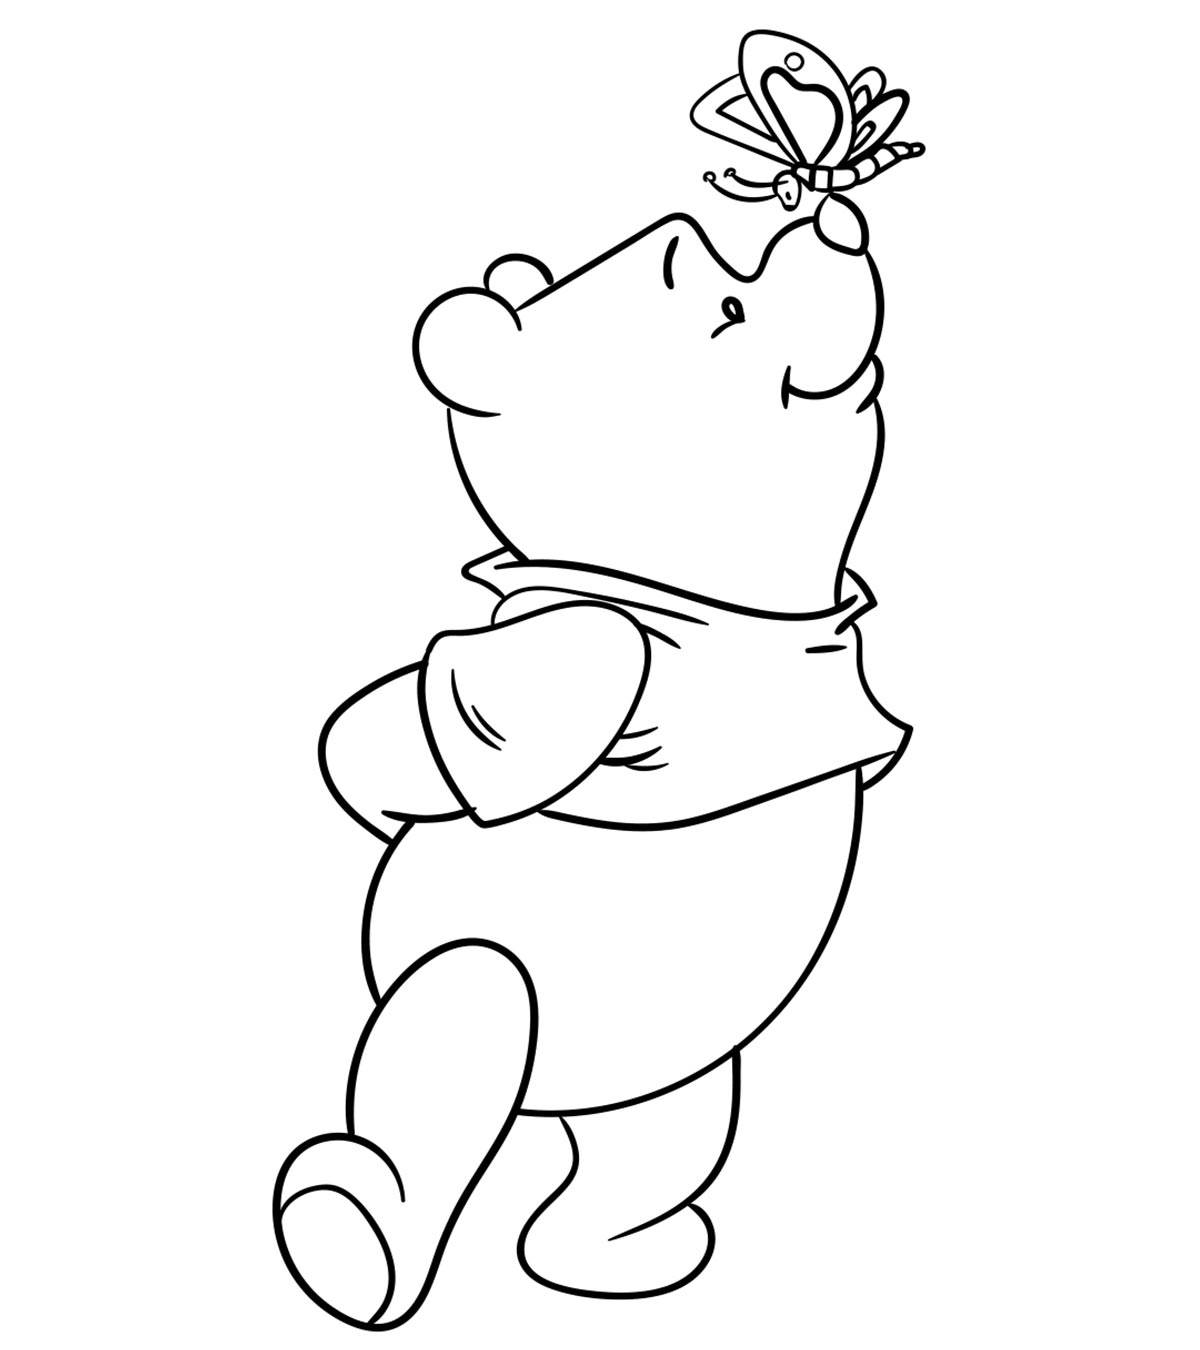 graphic regarding Winnie the Pooh Printable Coloring Pages identify Ultimate 30 No cost Printable Lovely Winnie The Pooh Coloring Internet pages On the net